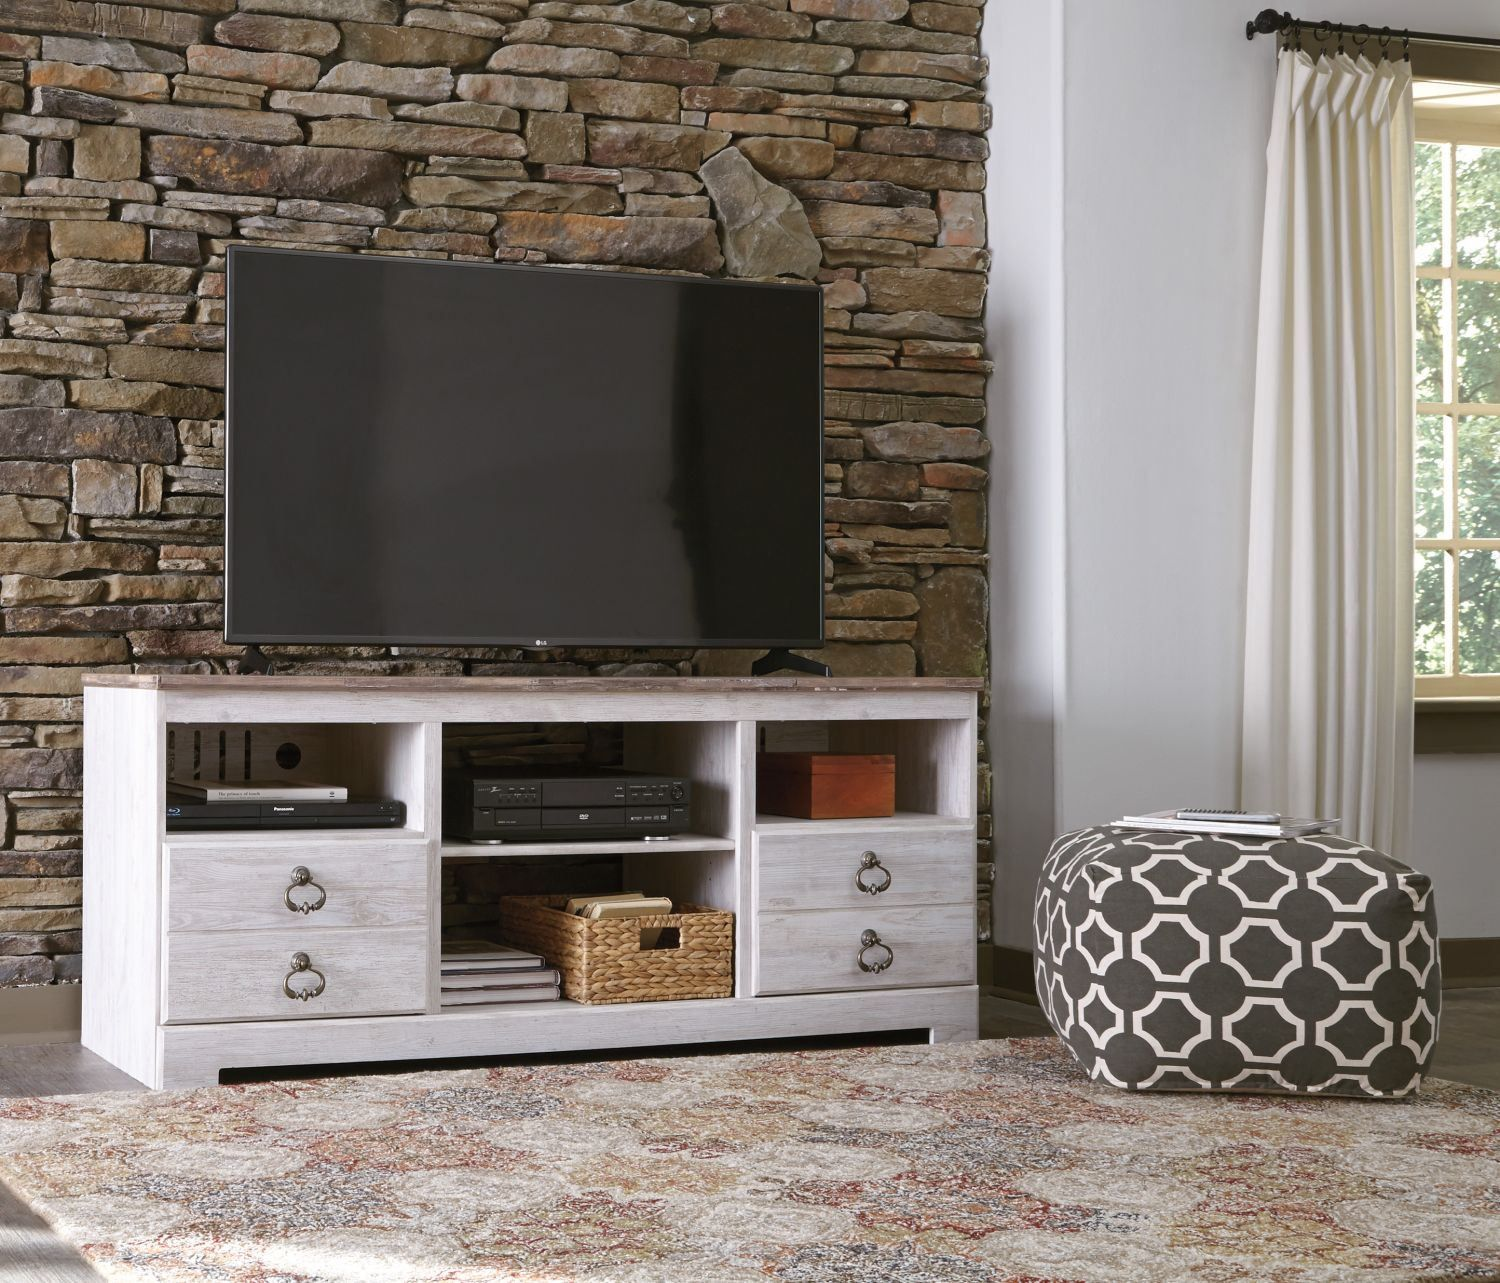 Willowton Tv Stand Fireplace Optional In 2021 Fireplace Tv Stand Fireplace Entertainment Fireplace Furniture